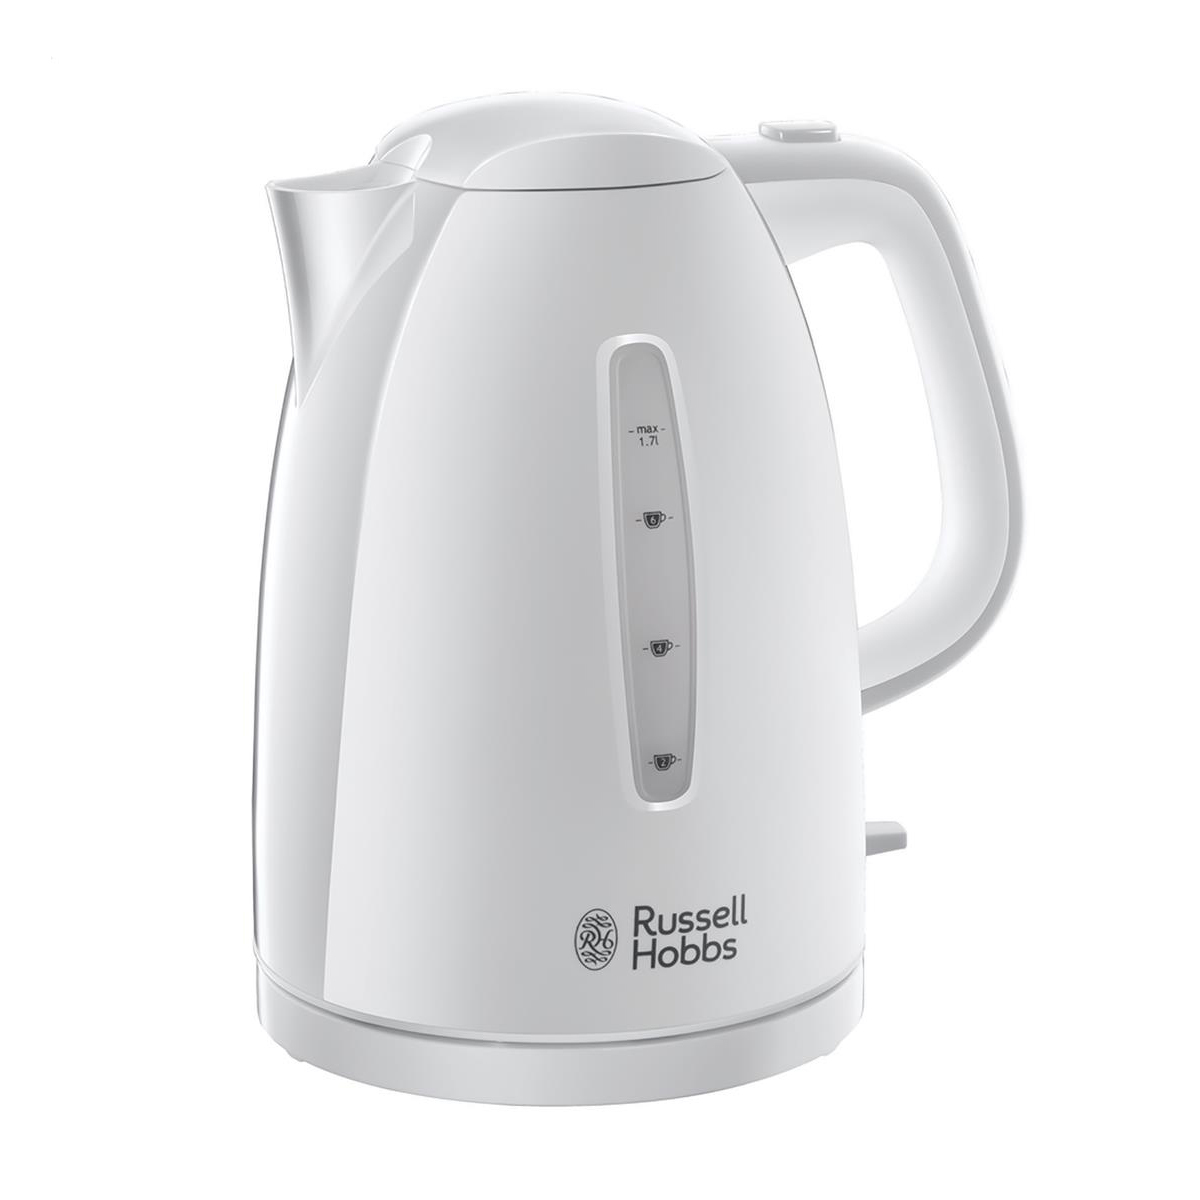 Kitchen Appliances Russell Hobbs Textures Kettle 1.7L 3000W 360 Degrees Rotation Auto-off Safety Lid White Ref RH2127